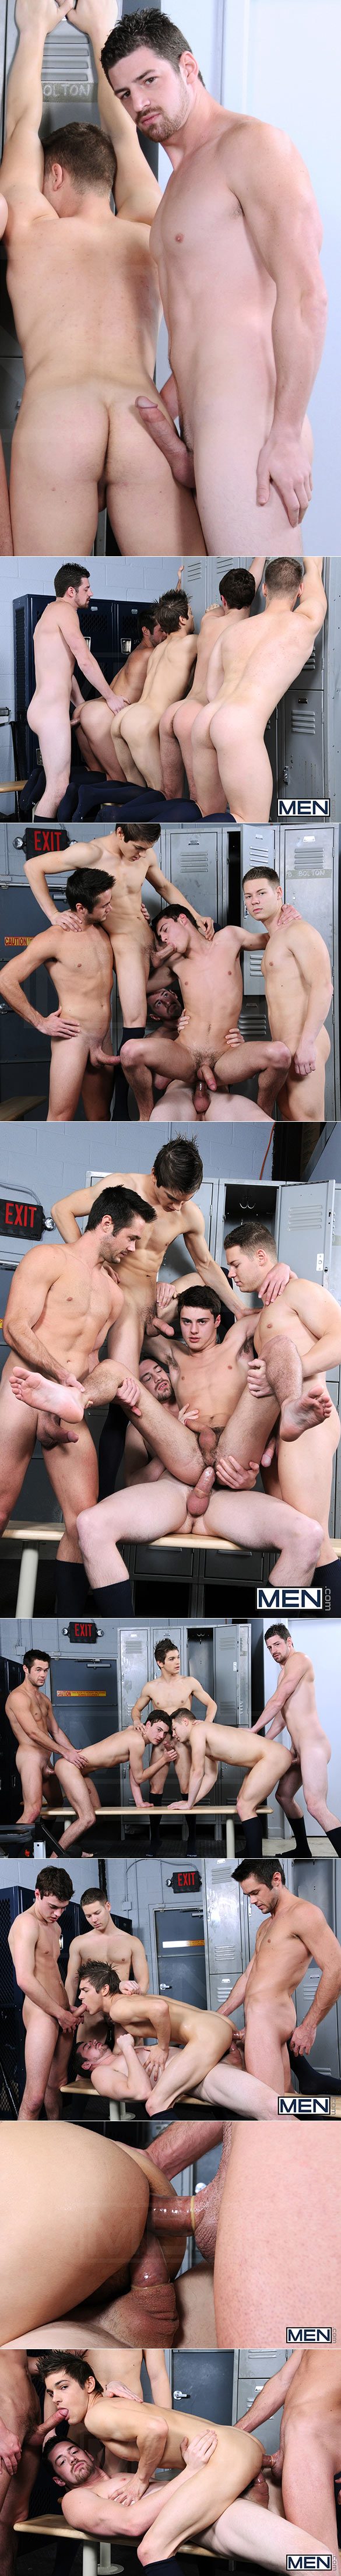 "Men.com: Andrew Stark pounds Johnny Rapid, Mike De Marko, Riley Banks and Hunter Page in ""Major League, Part 3"""